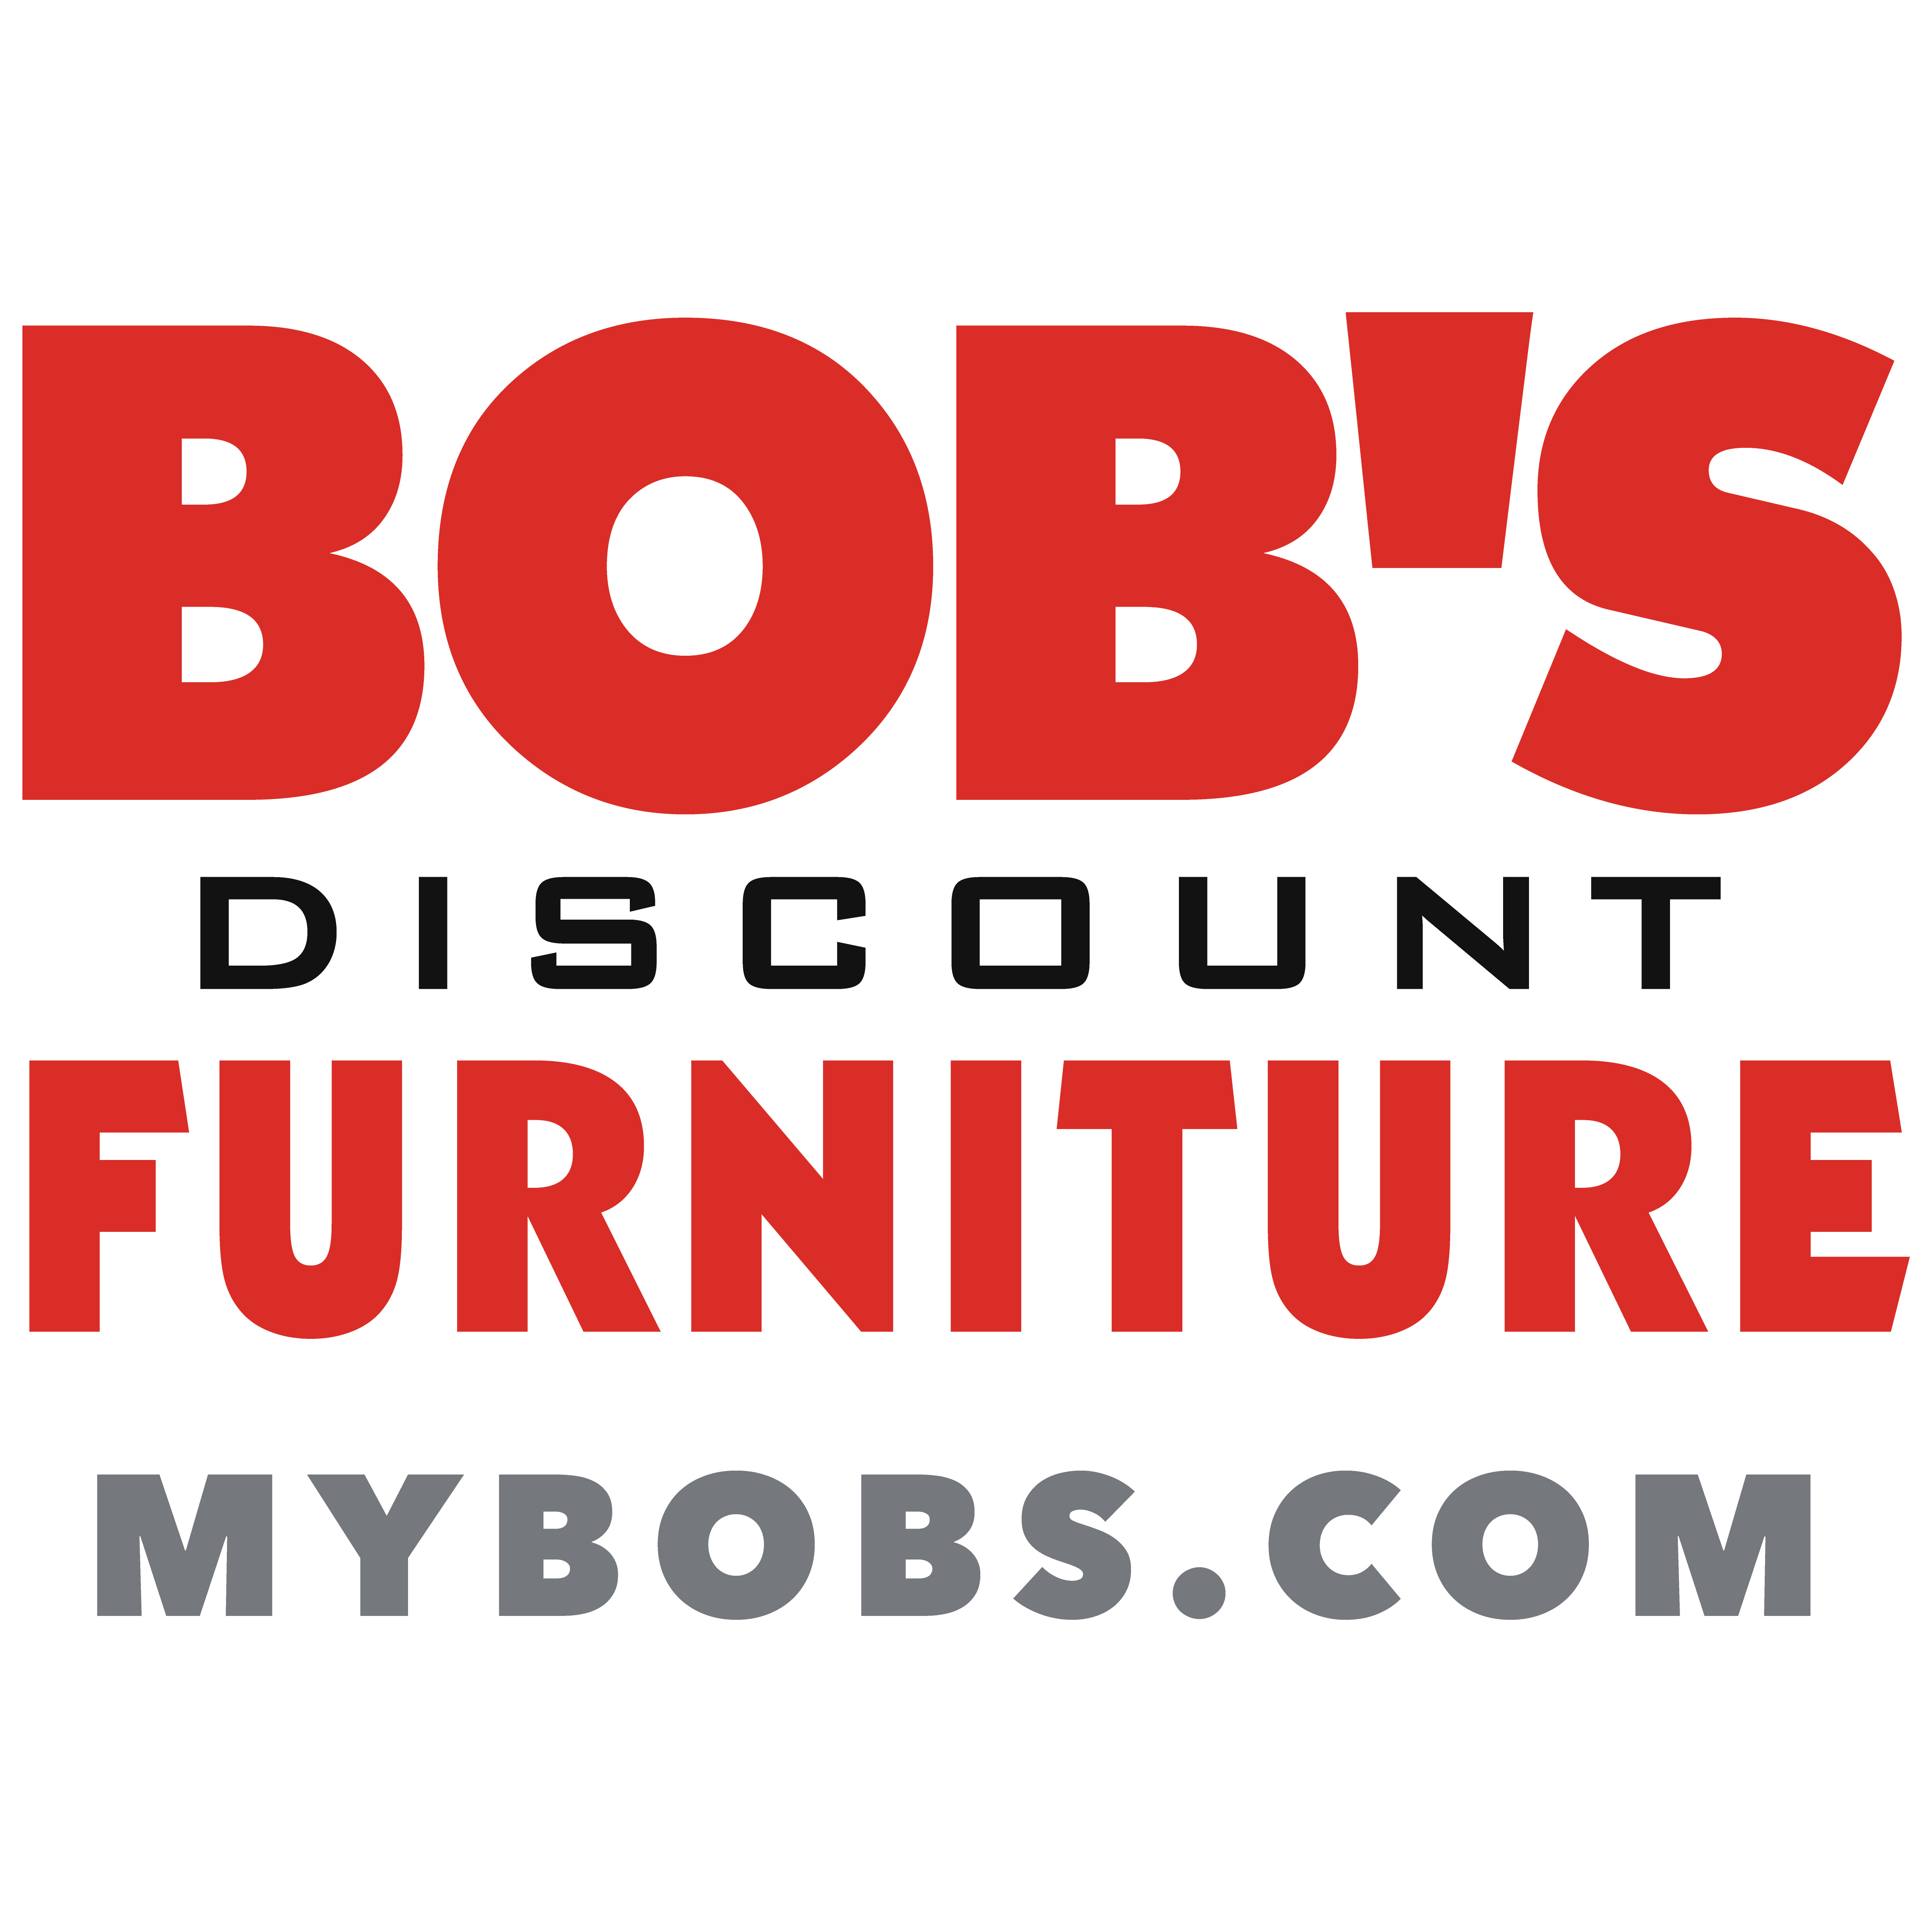 Bob's Discount Furniture and Mattress Store